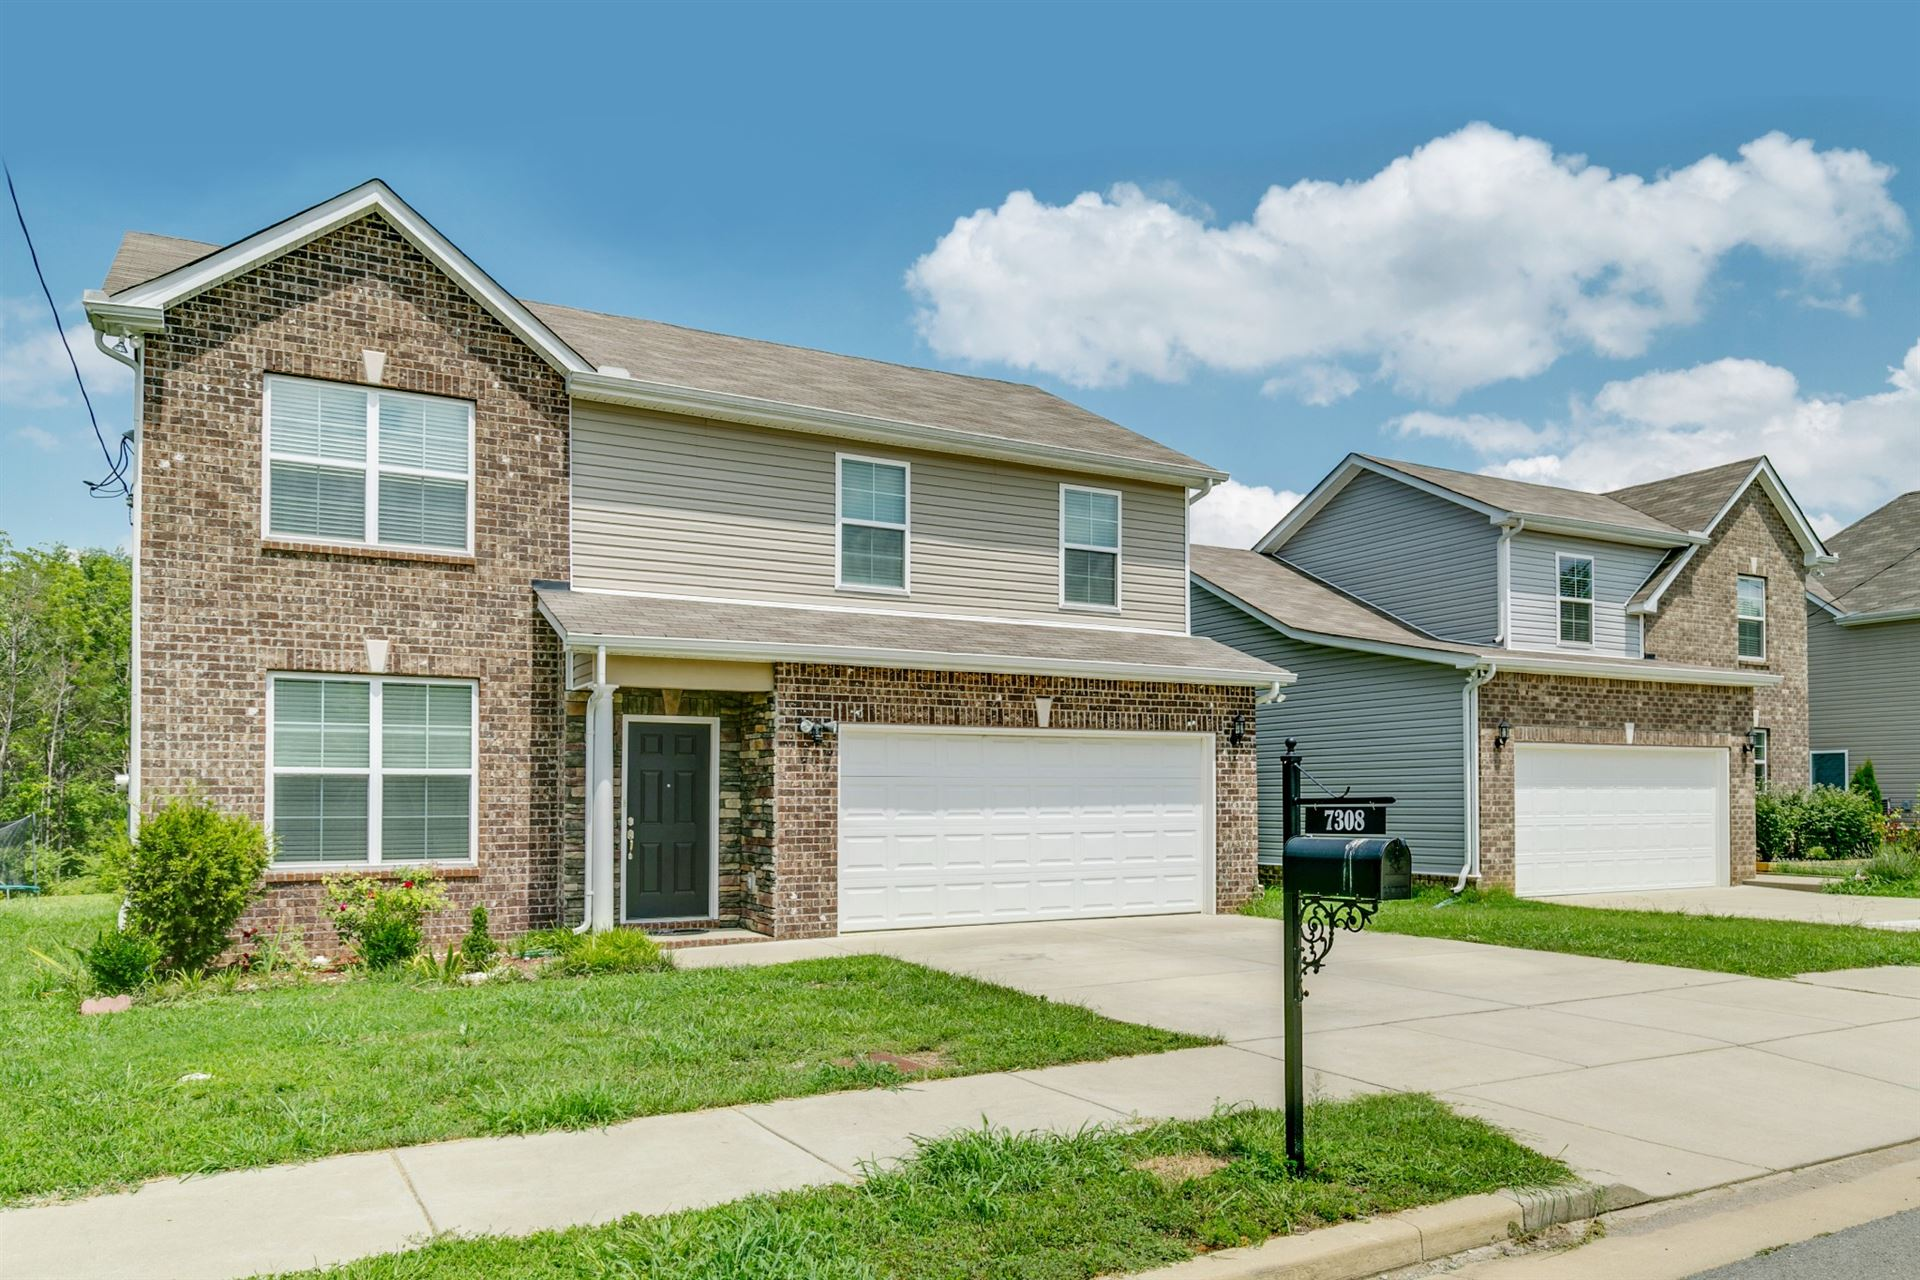 7308 Maroney Dr, Antioch, TN 37013 - MLS#: 2178483